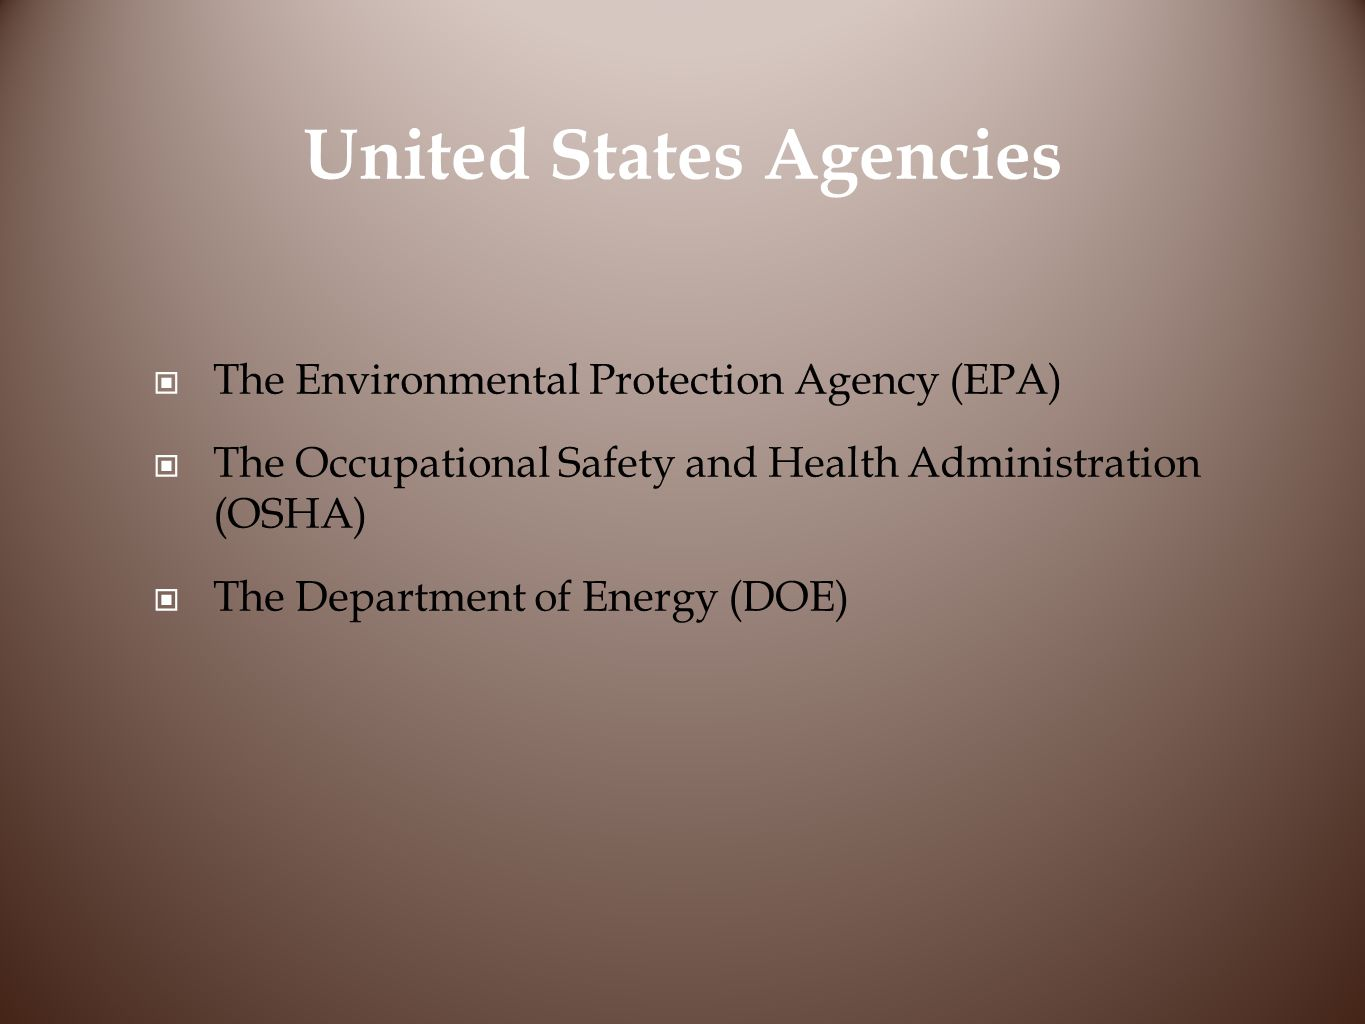 United States Agencies The Environmental Protection Agency (EPA) The Occupational Safety and Health Administration (OSHA) The Department of Energy (DOE)